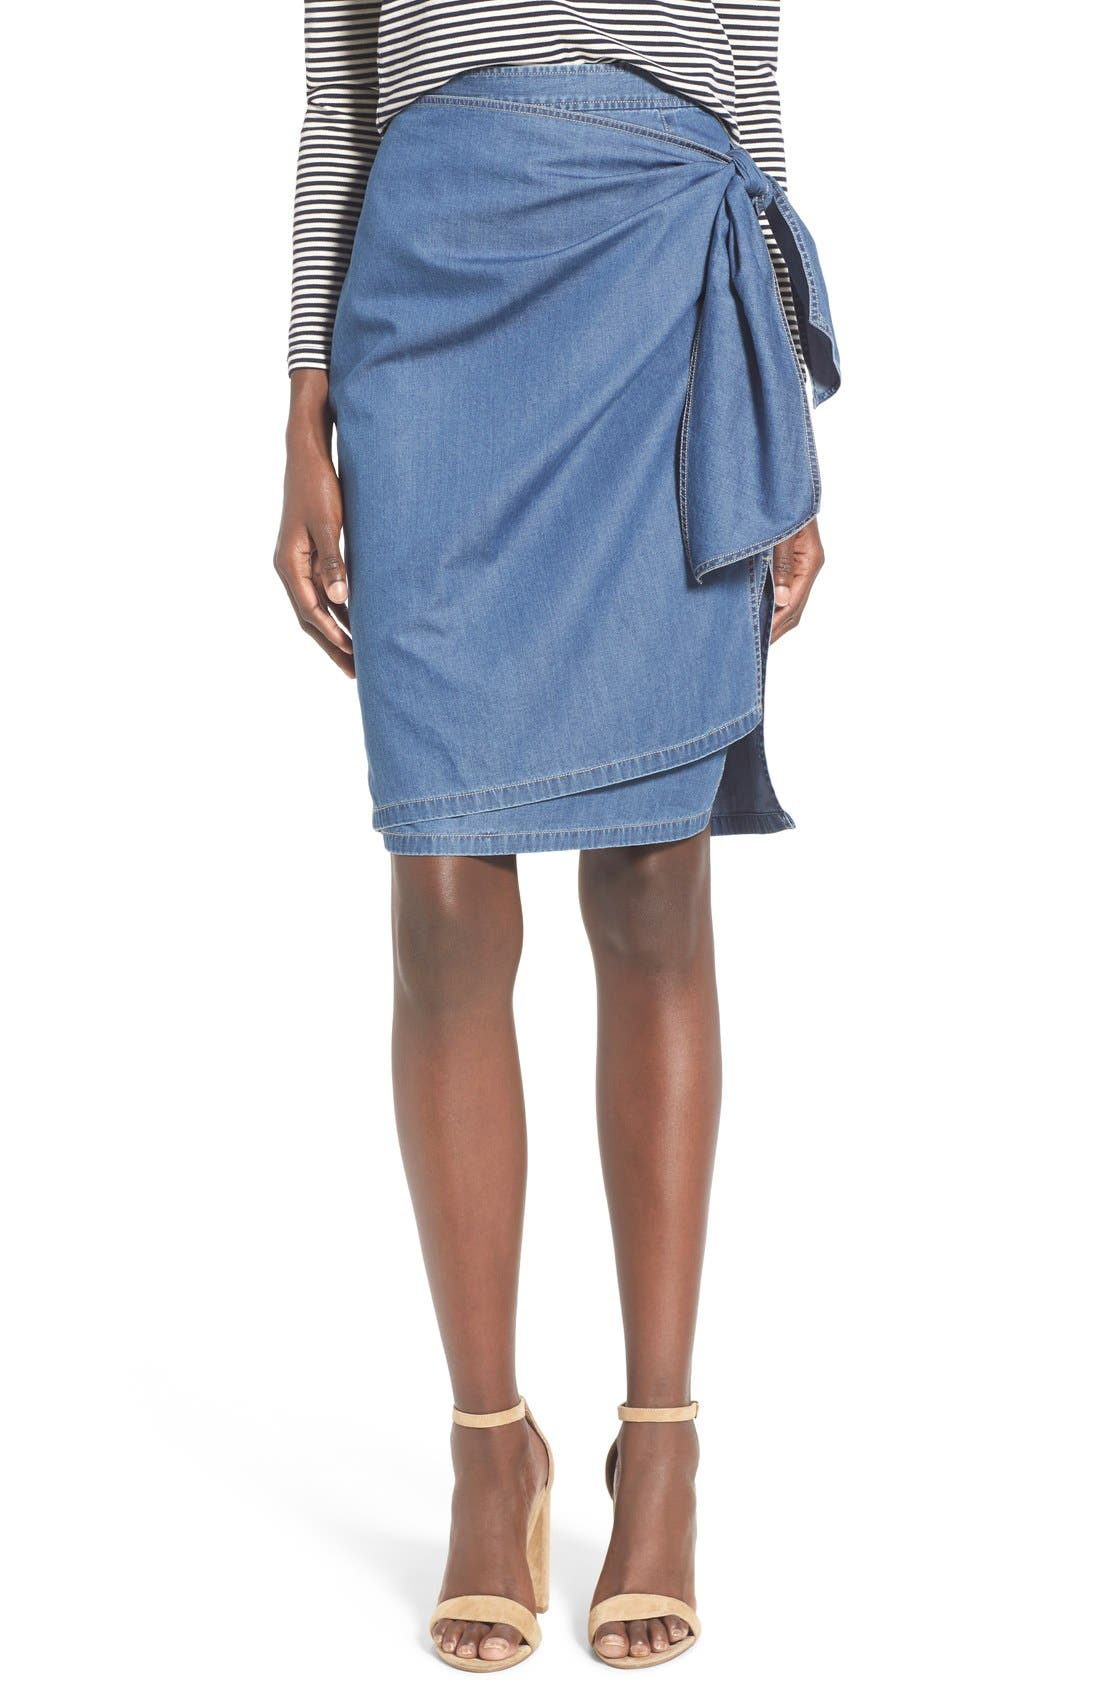 Alternate Image 1 Selected - Chelsea28 Tie Front Chambray Skirt